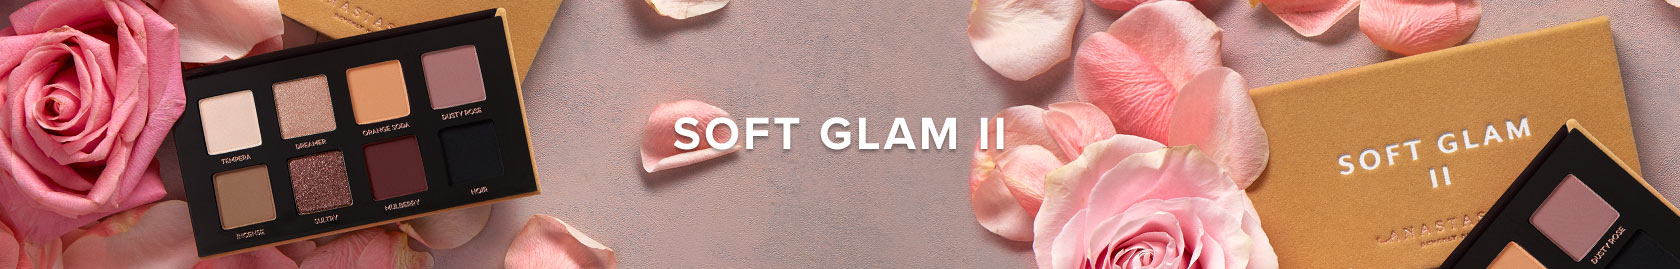 Soft Glam II Palette - Take our iconic palette on the go